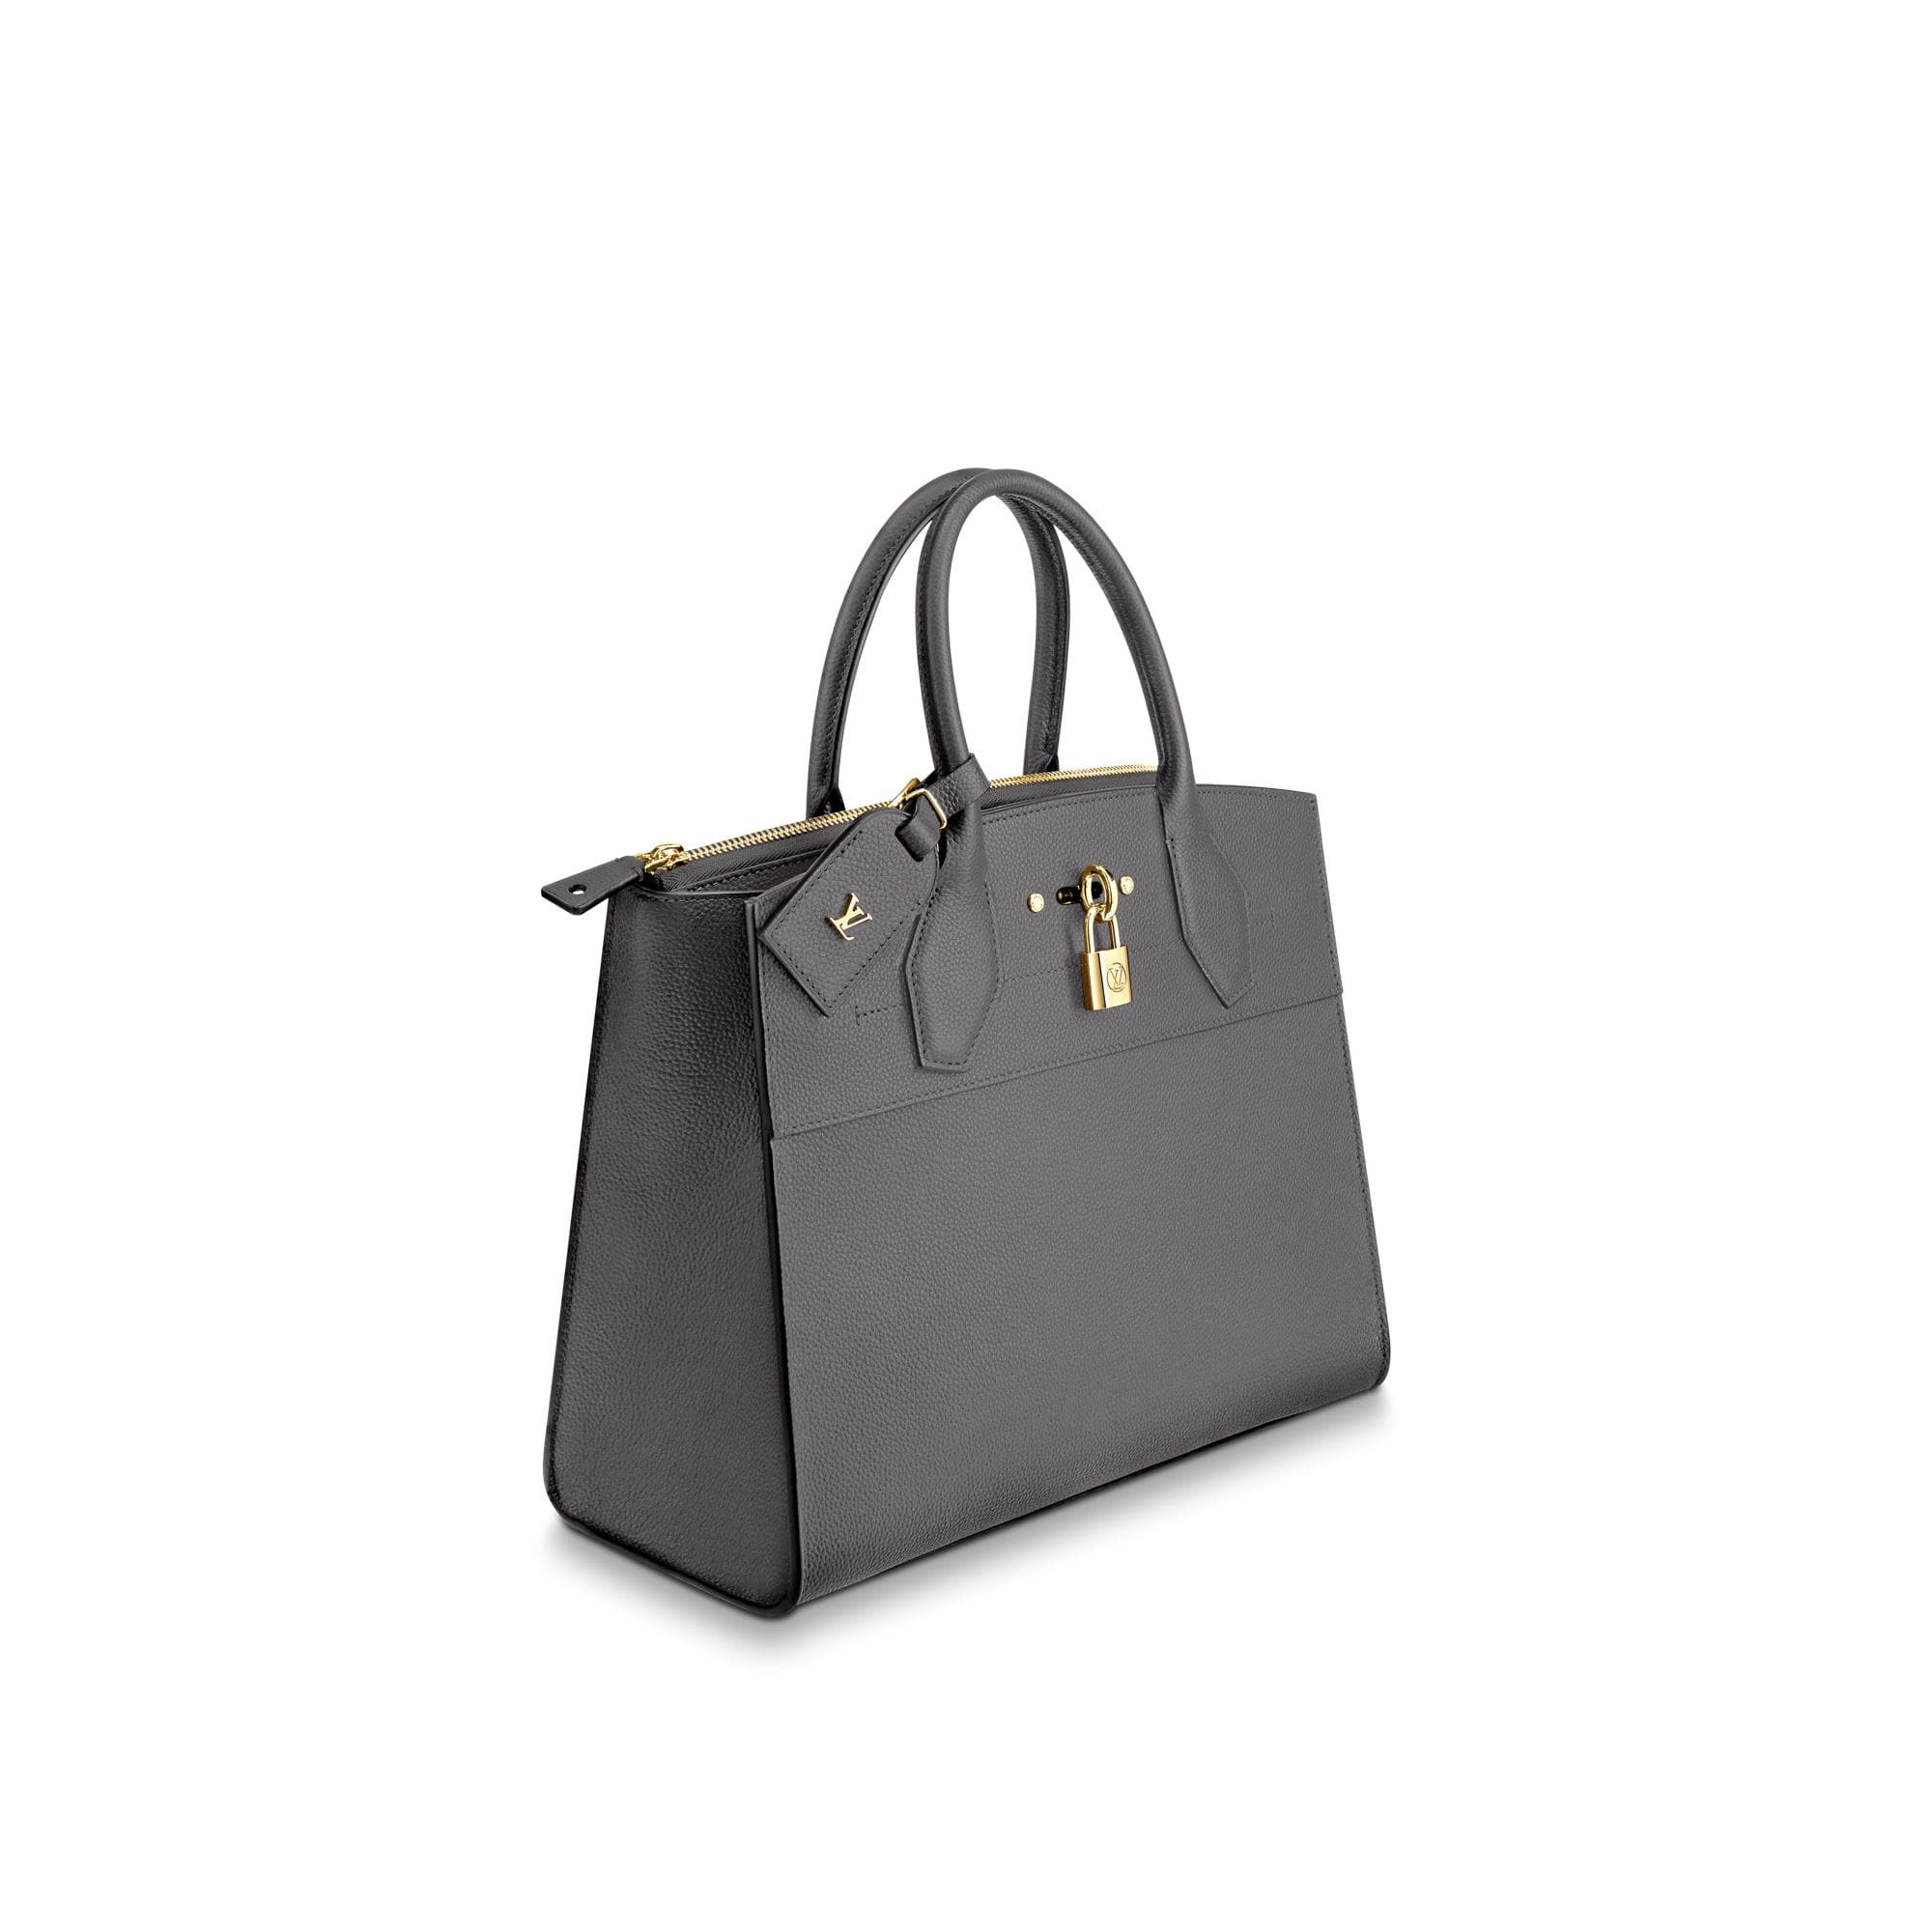 유럽직배송 루이비통 LOUIS VUITTON City Steamer MM M51897